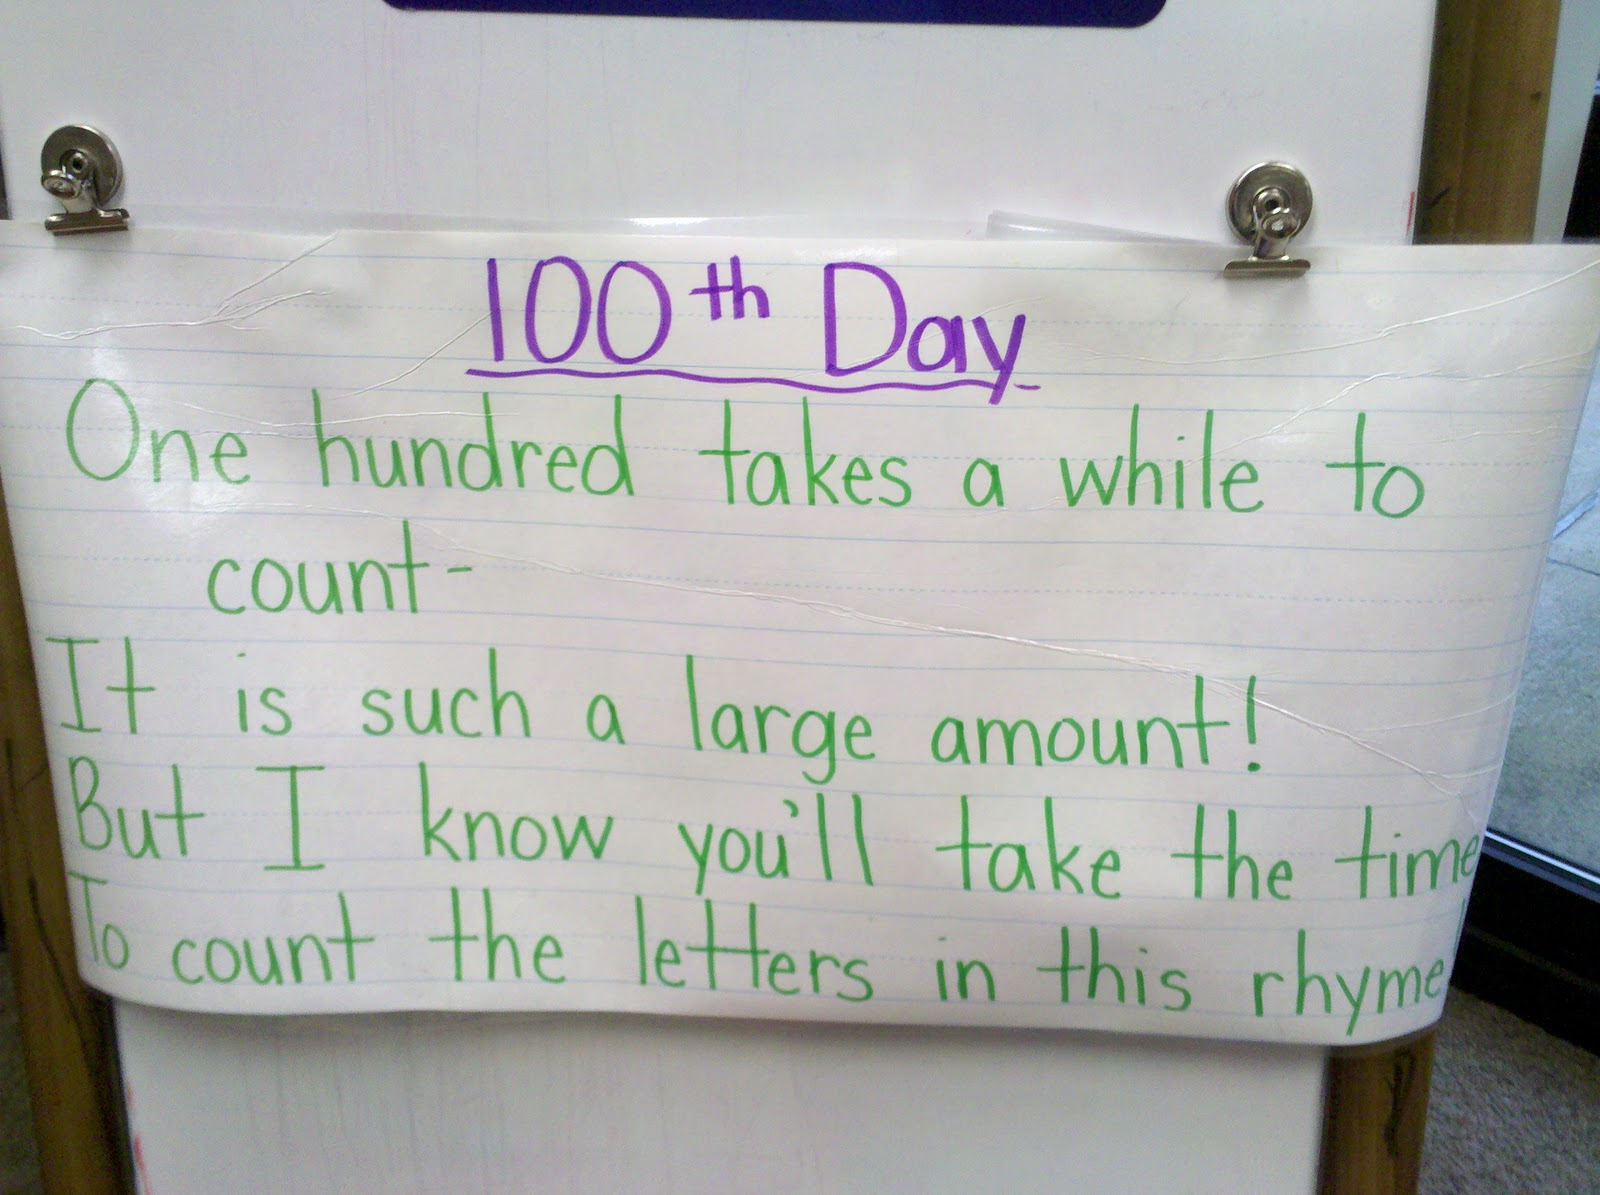 Our 100th Day